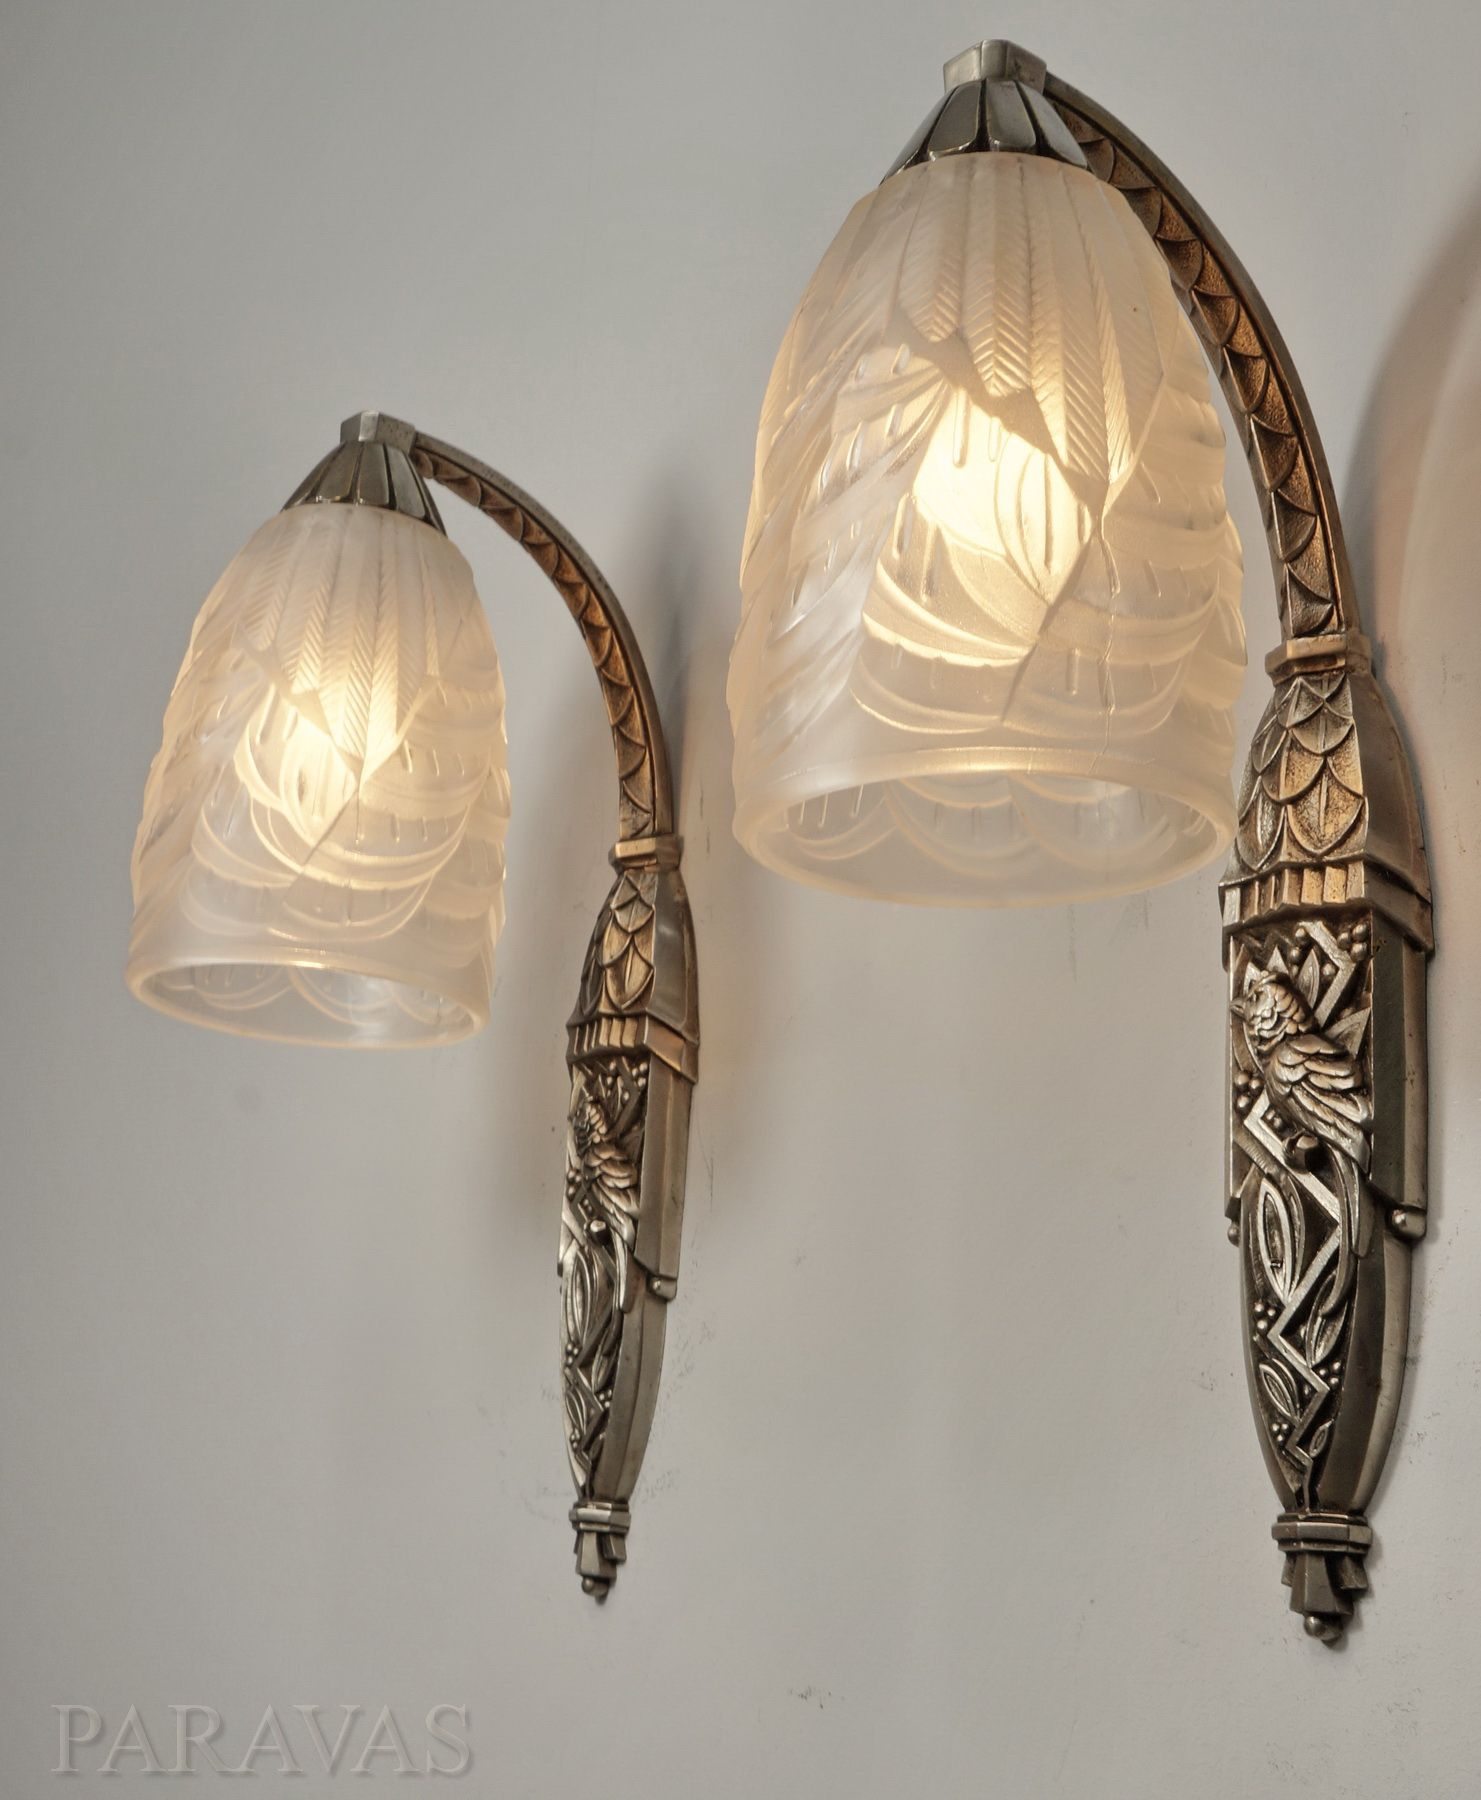 Bathroom Sconces Ebay schneider : pair of 1930 french art deco wall sconces (paravas